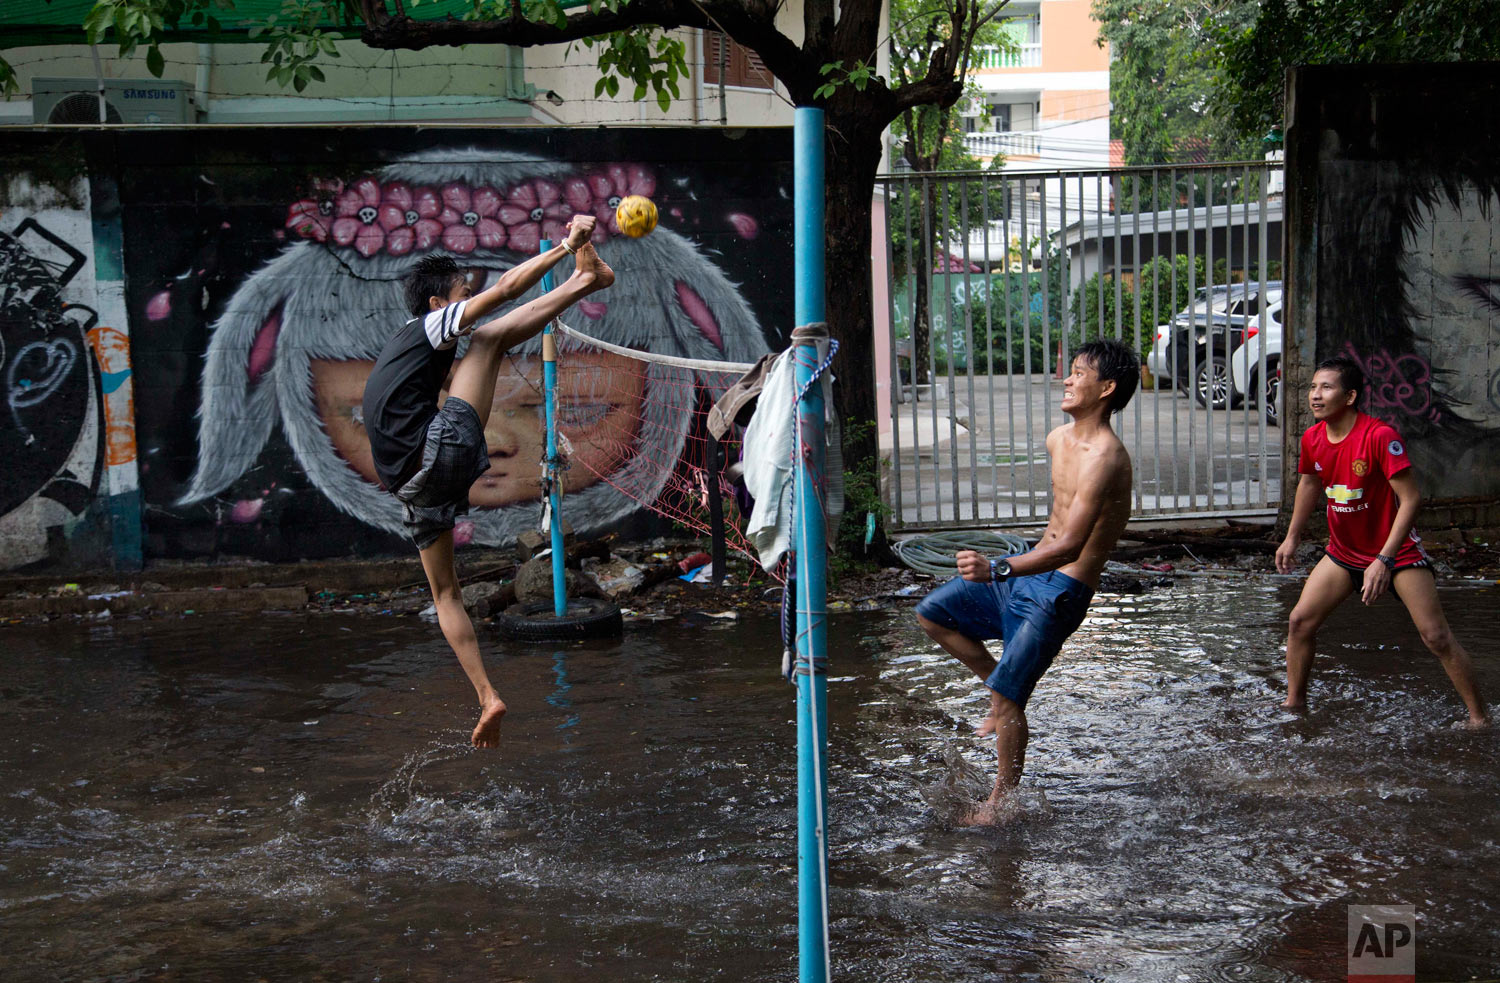 An airborne migrant worker kicks a rattan ball during a game of Chinlone in a field flooded by rain water in Bangkok, Thailand, Thursday, May 31, 2018. The popular Burmese sport Chinlone, a combination of sport and dance, is played between two teams consisting of six players each, passing a rattan ball back and forth with feet, knees and heads. (AP Photo/Gemunu Amarasinghe)